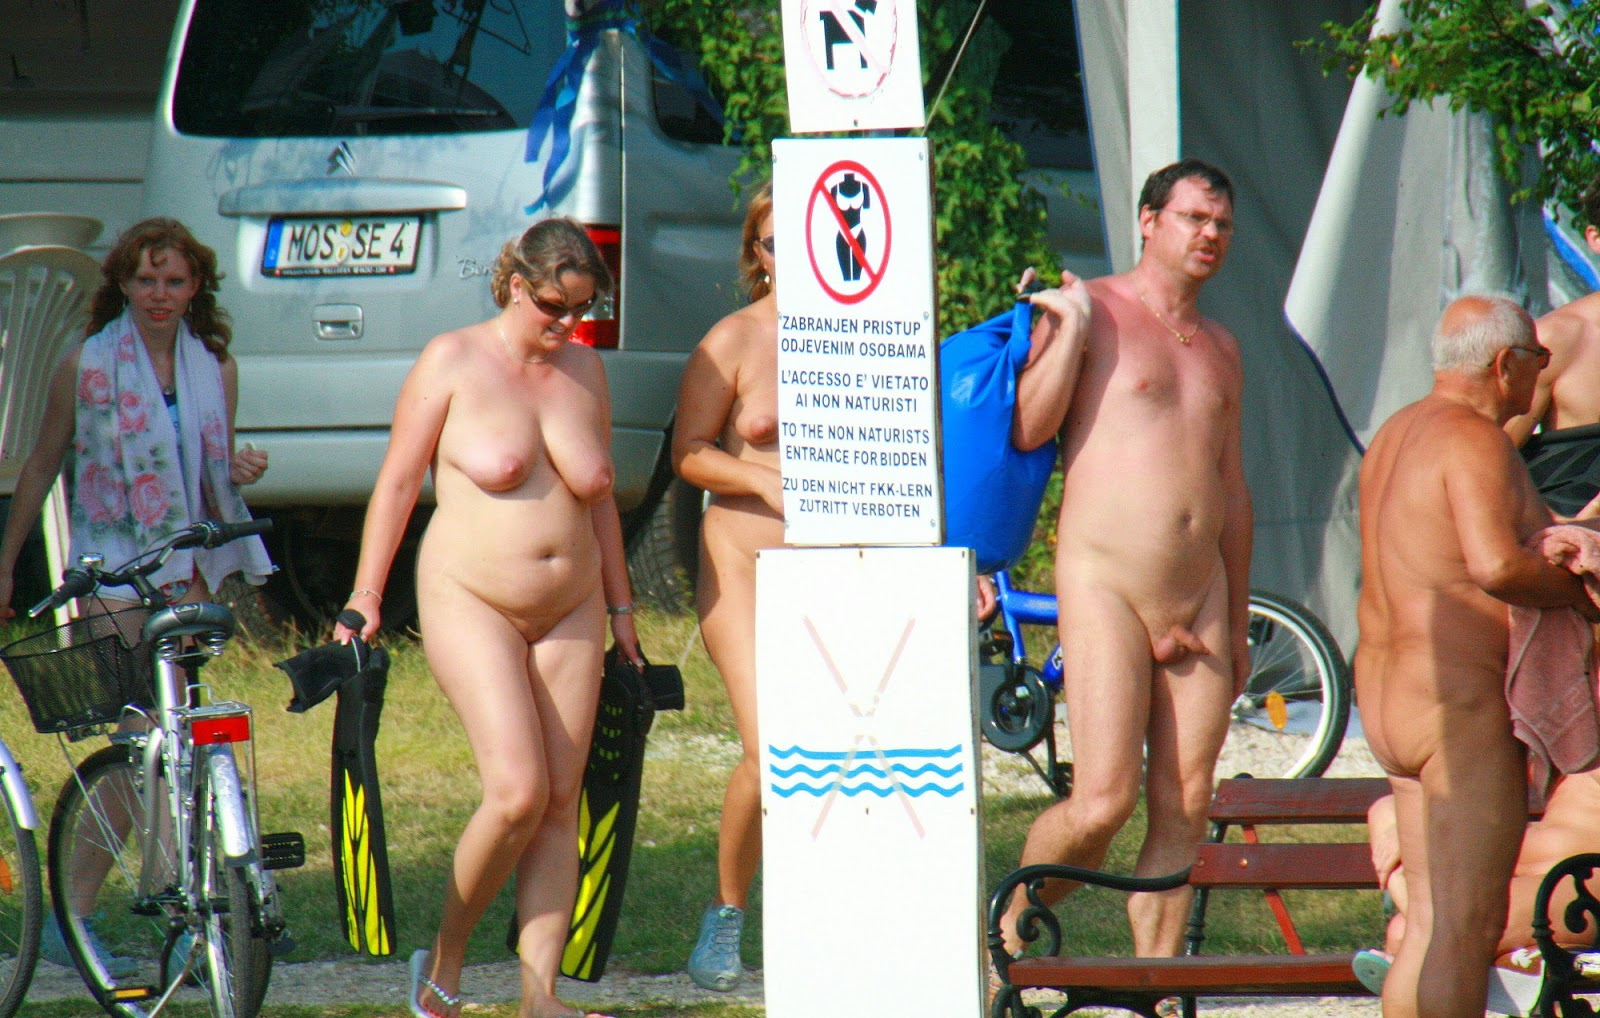 Family fkk nude apologise, too